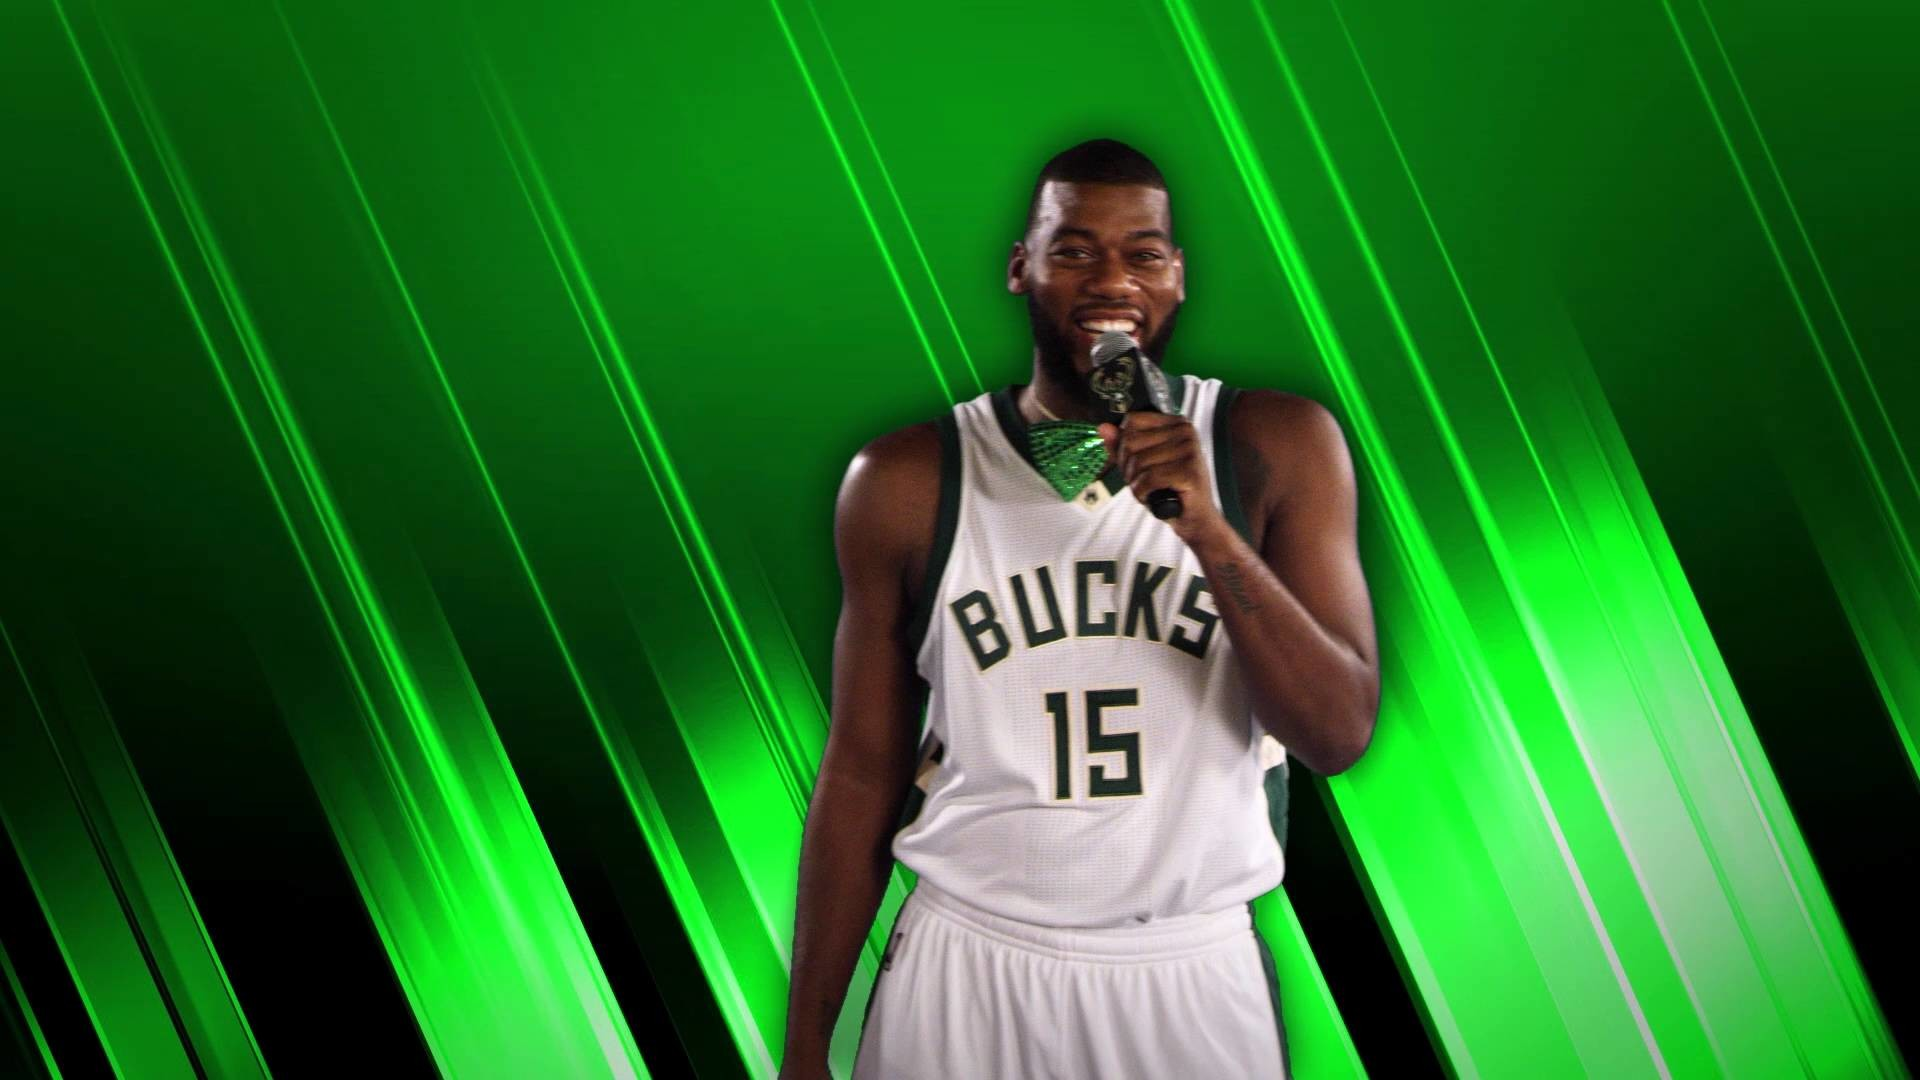 1920x1080 Lip Sync Battle: Greg Monroe. Milwaukee Bucks